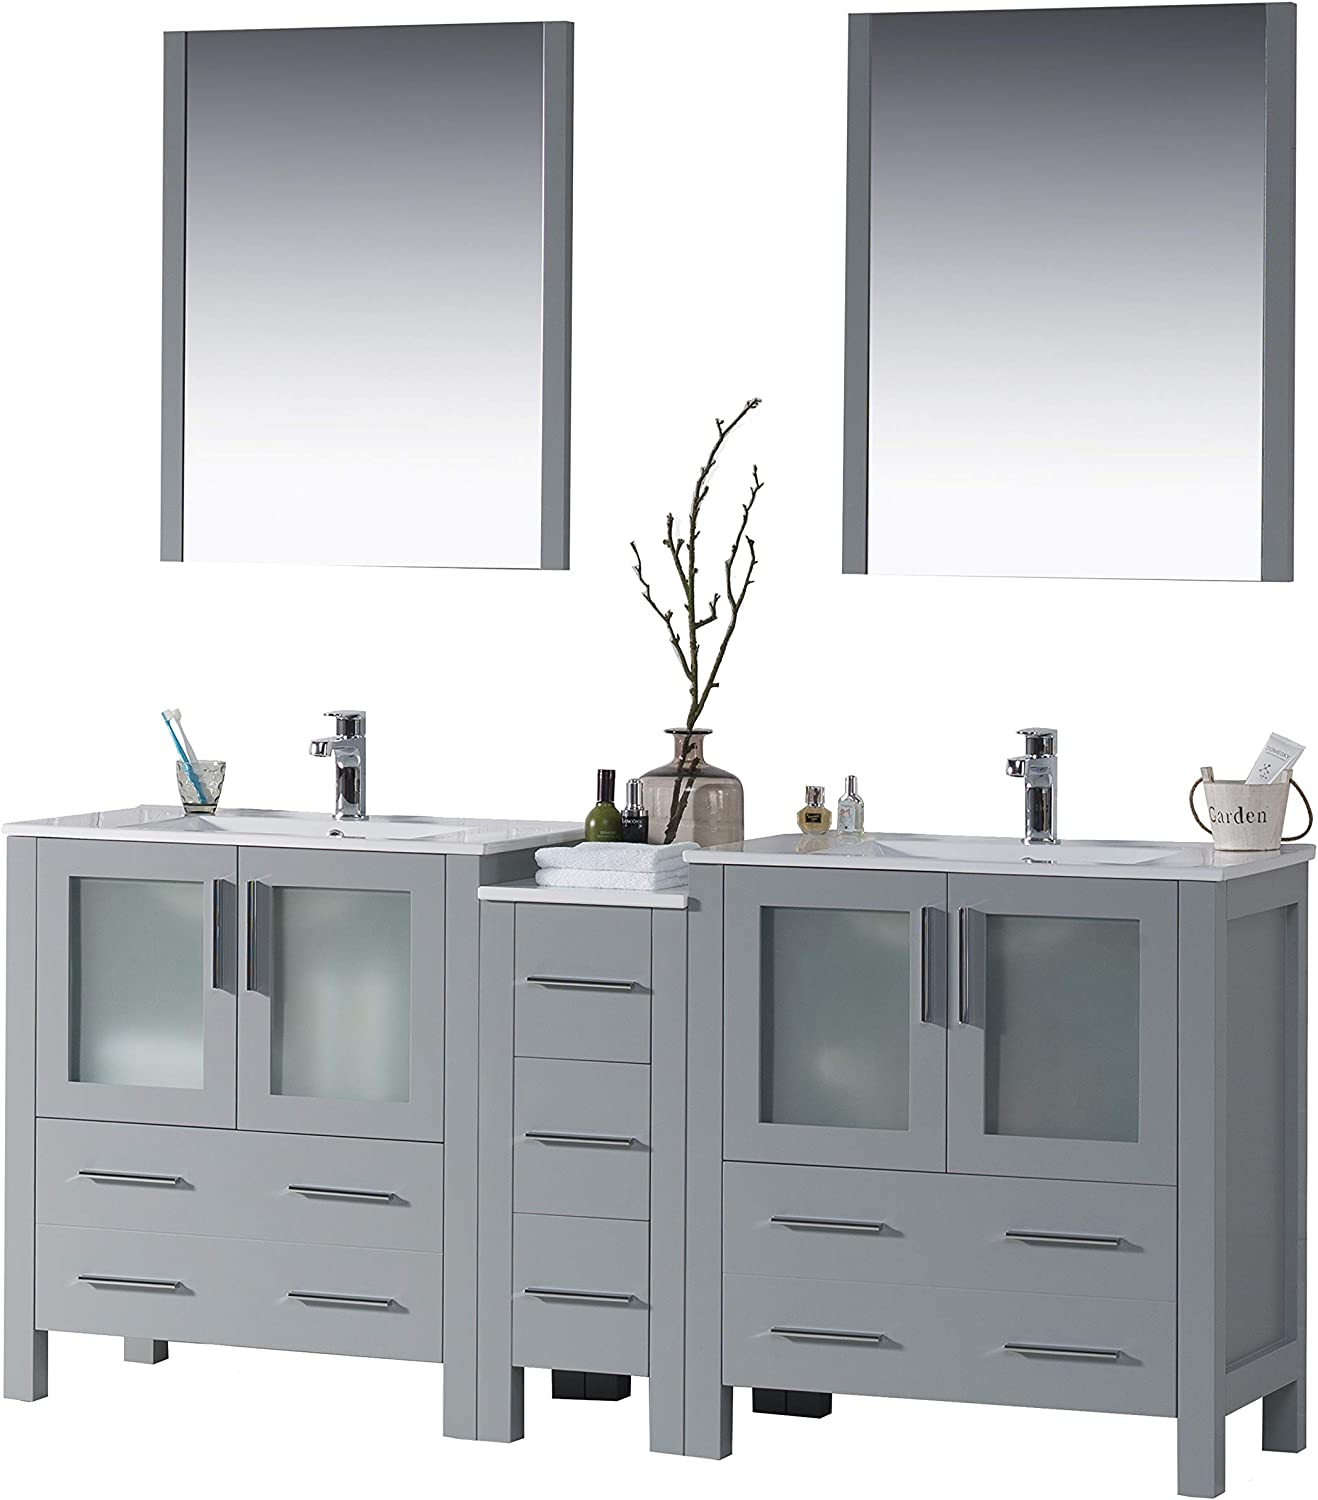 Amazon Com Blossom Sydney 72 Inches Double Sink Bathroom Vanity Side Cabinet Ceramic Sink With Mirror All Wood Metal Grey 001 72 15 D Kitchen Dining